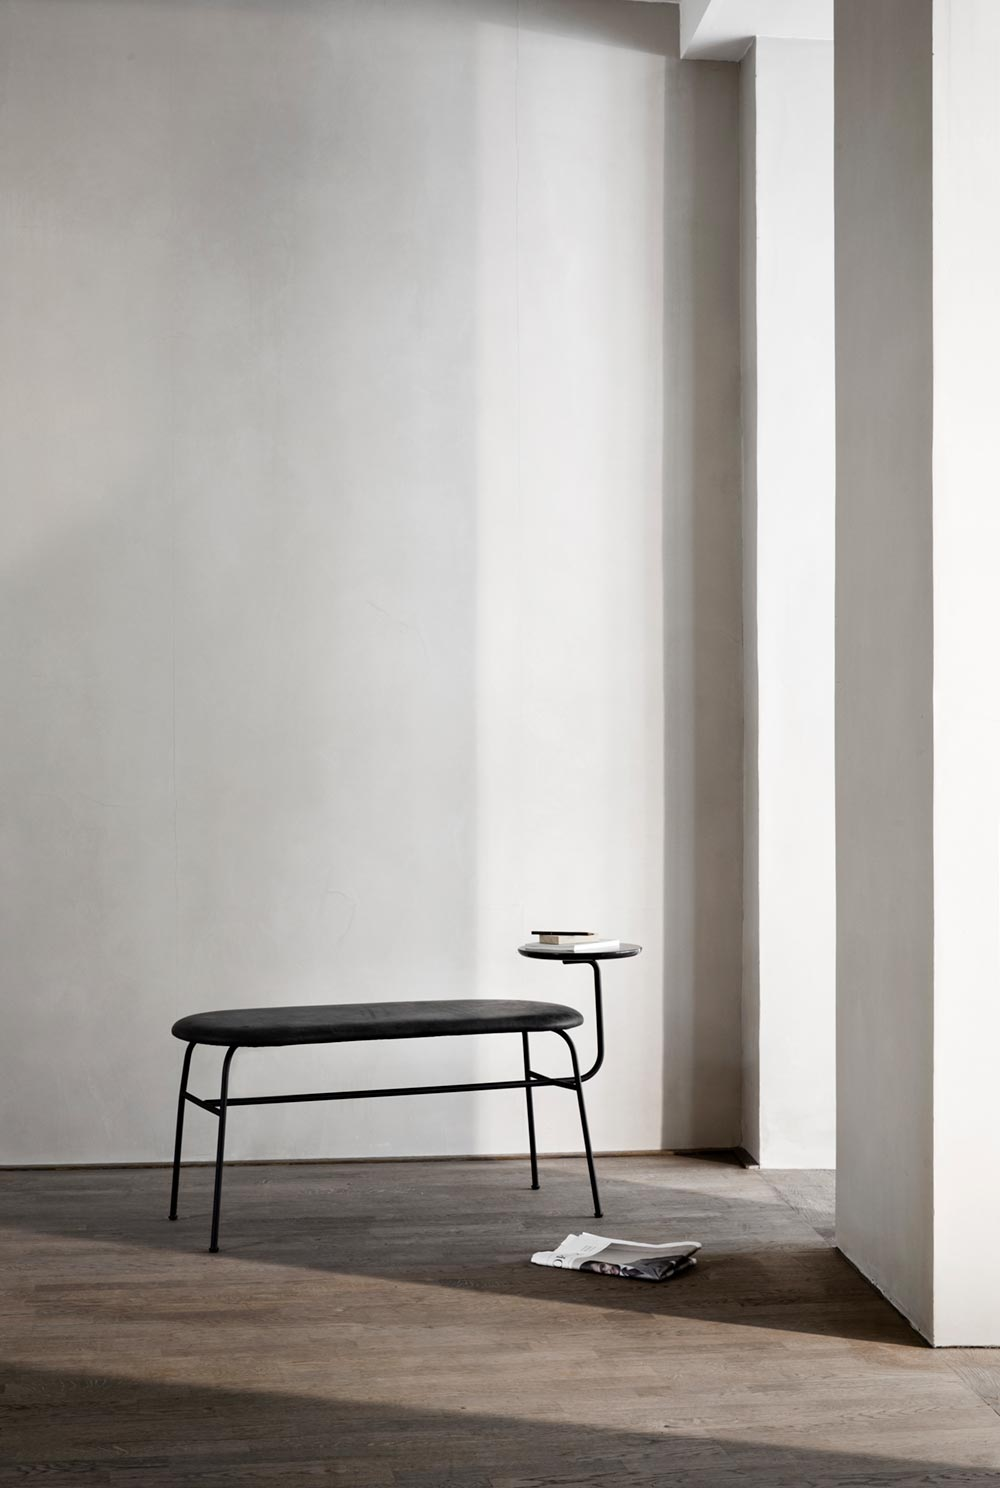 Minimalist Interiors Of The Kinfolk Gallery And Office